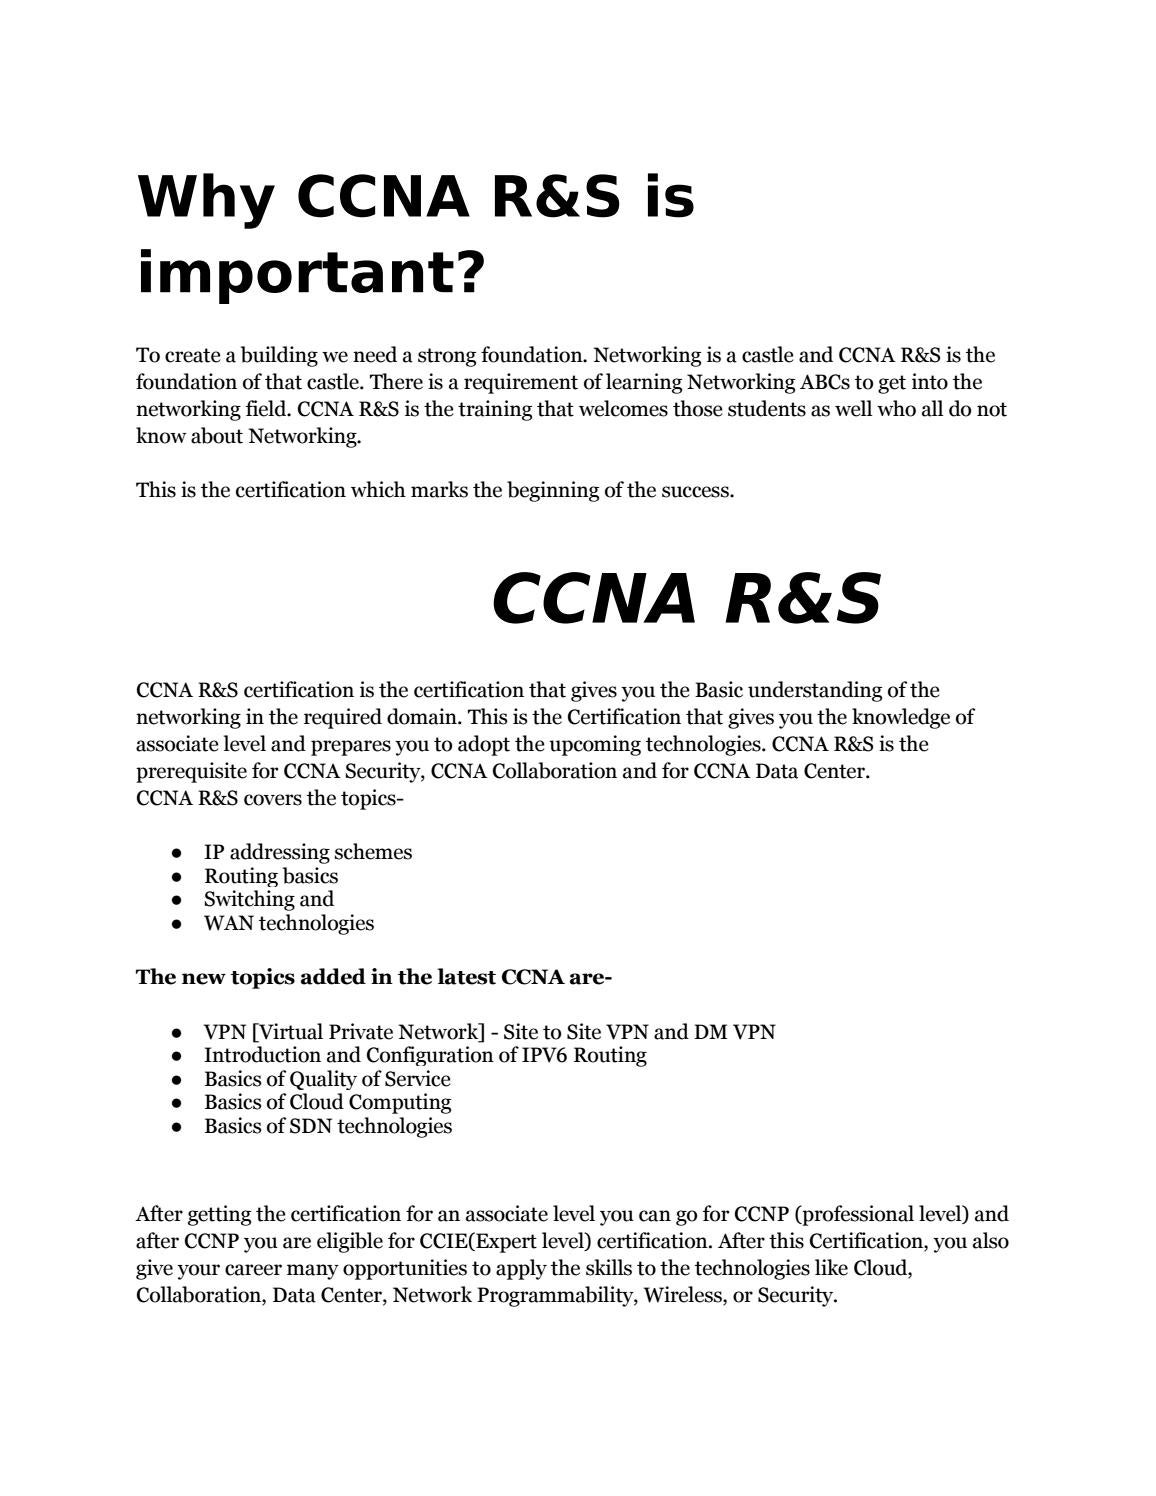 ccna data center vs ccna security